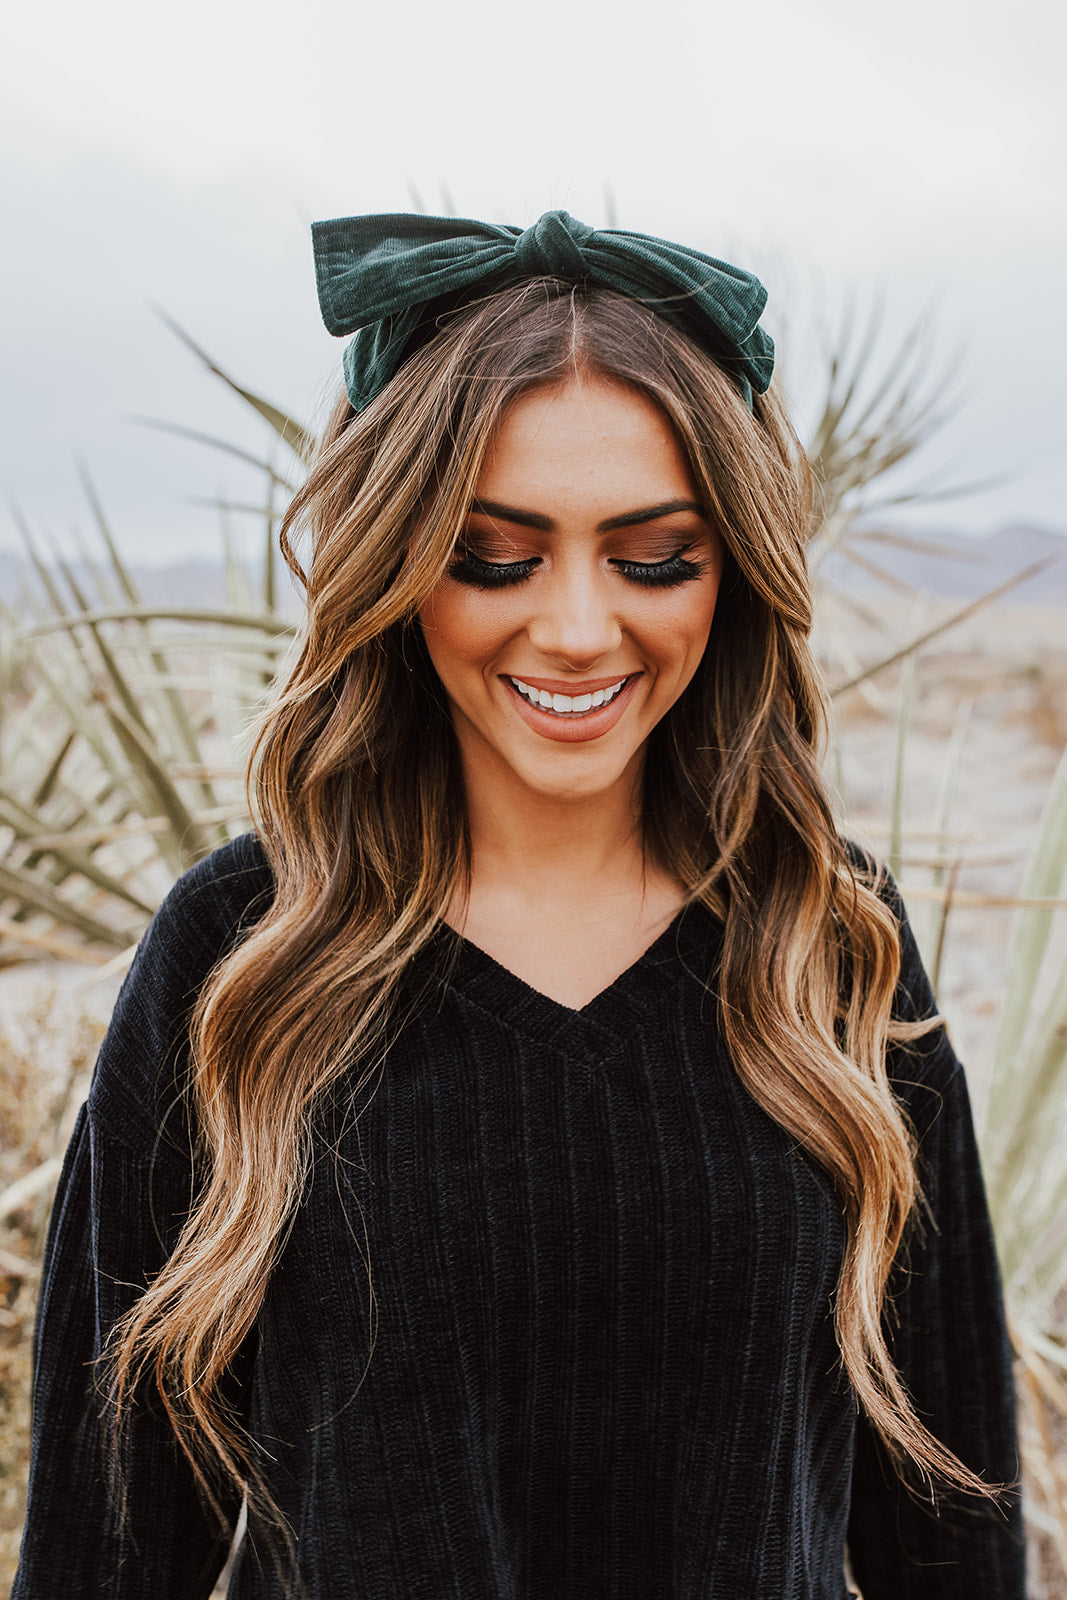 THE VELVET BOW HEADBAND IN HUNTER